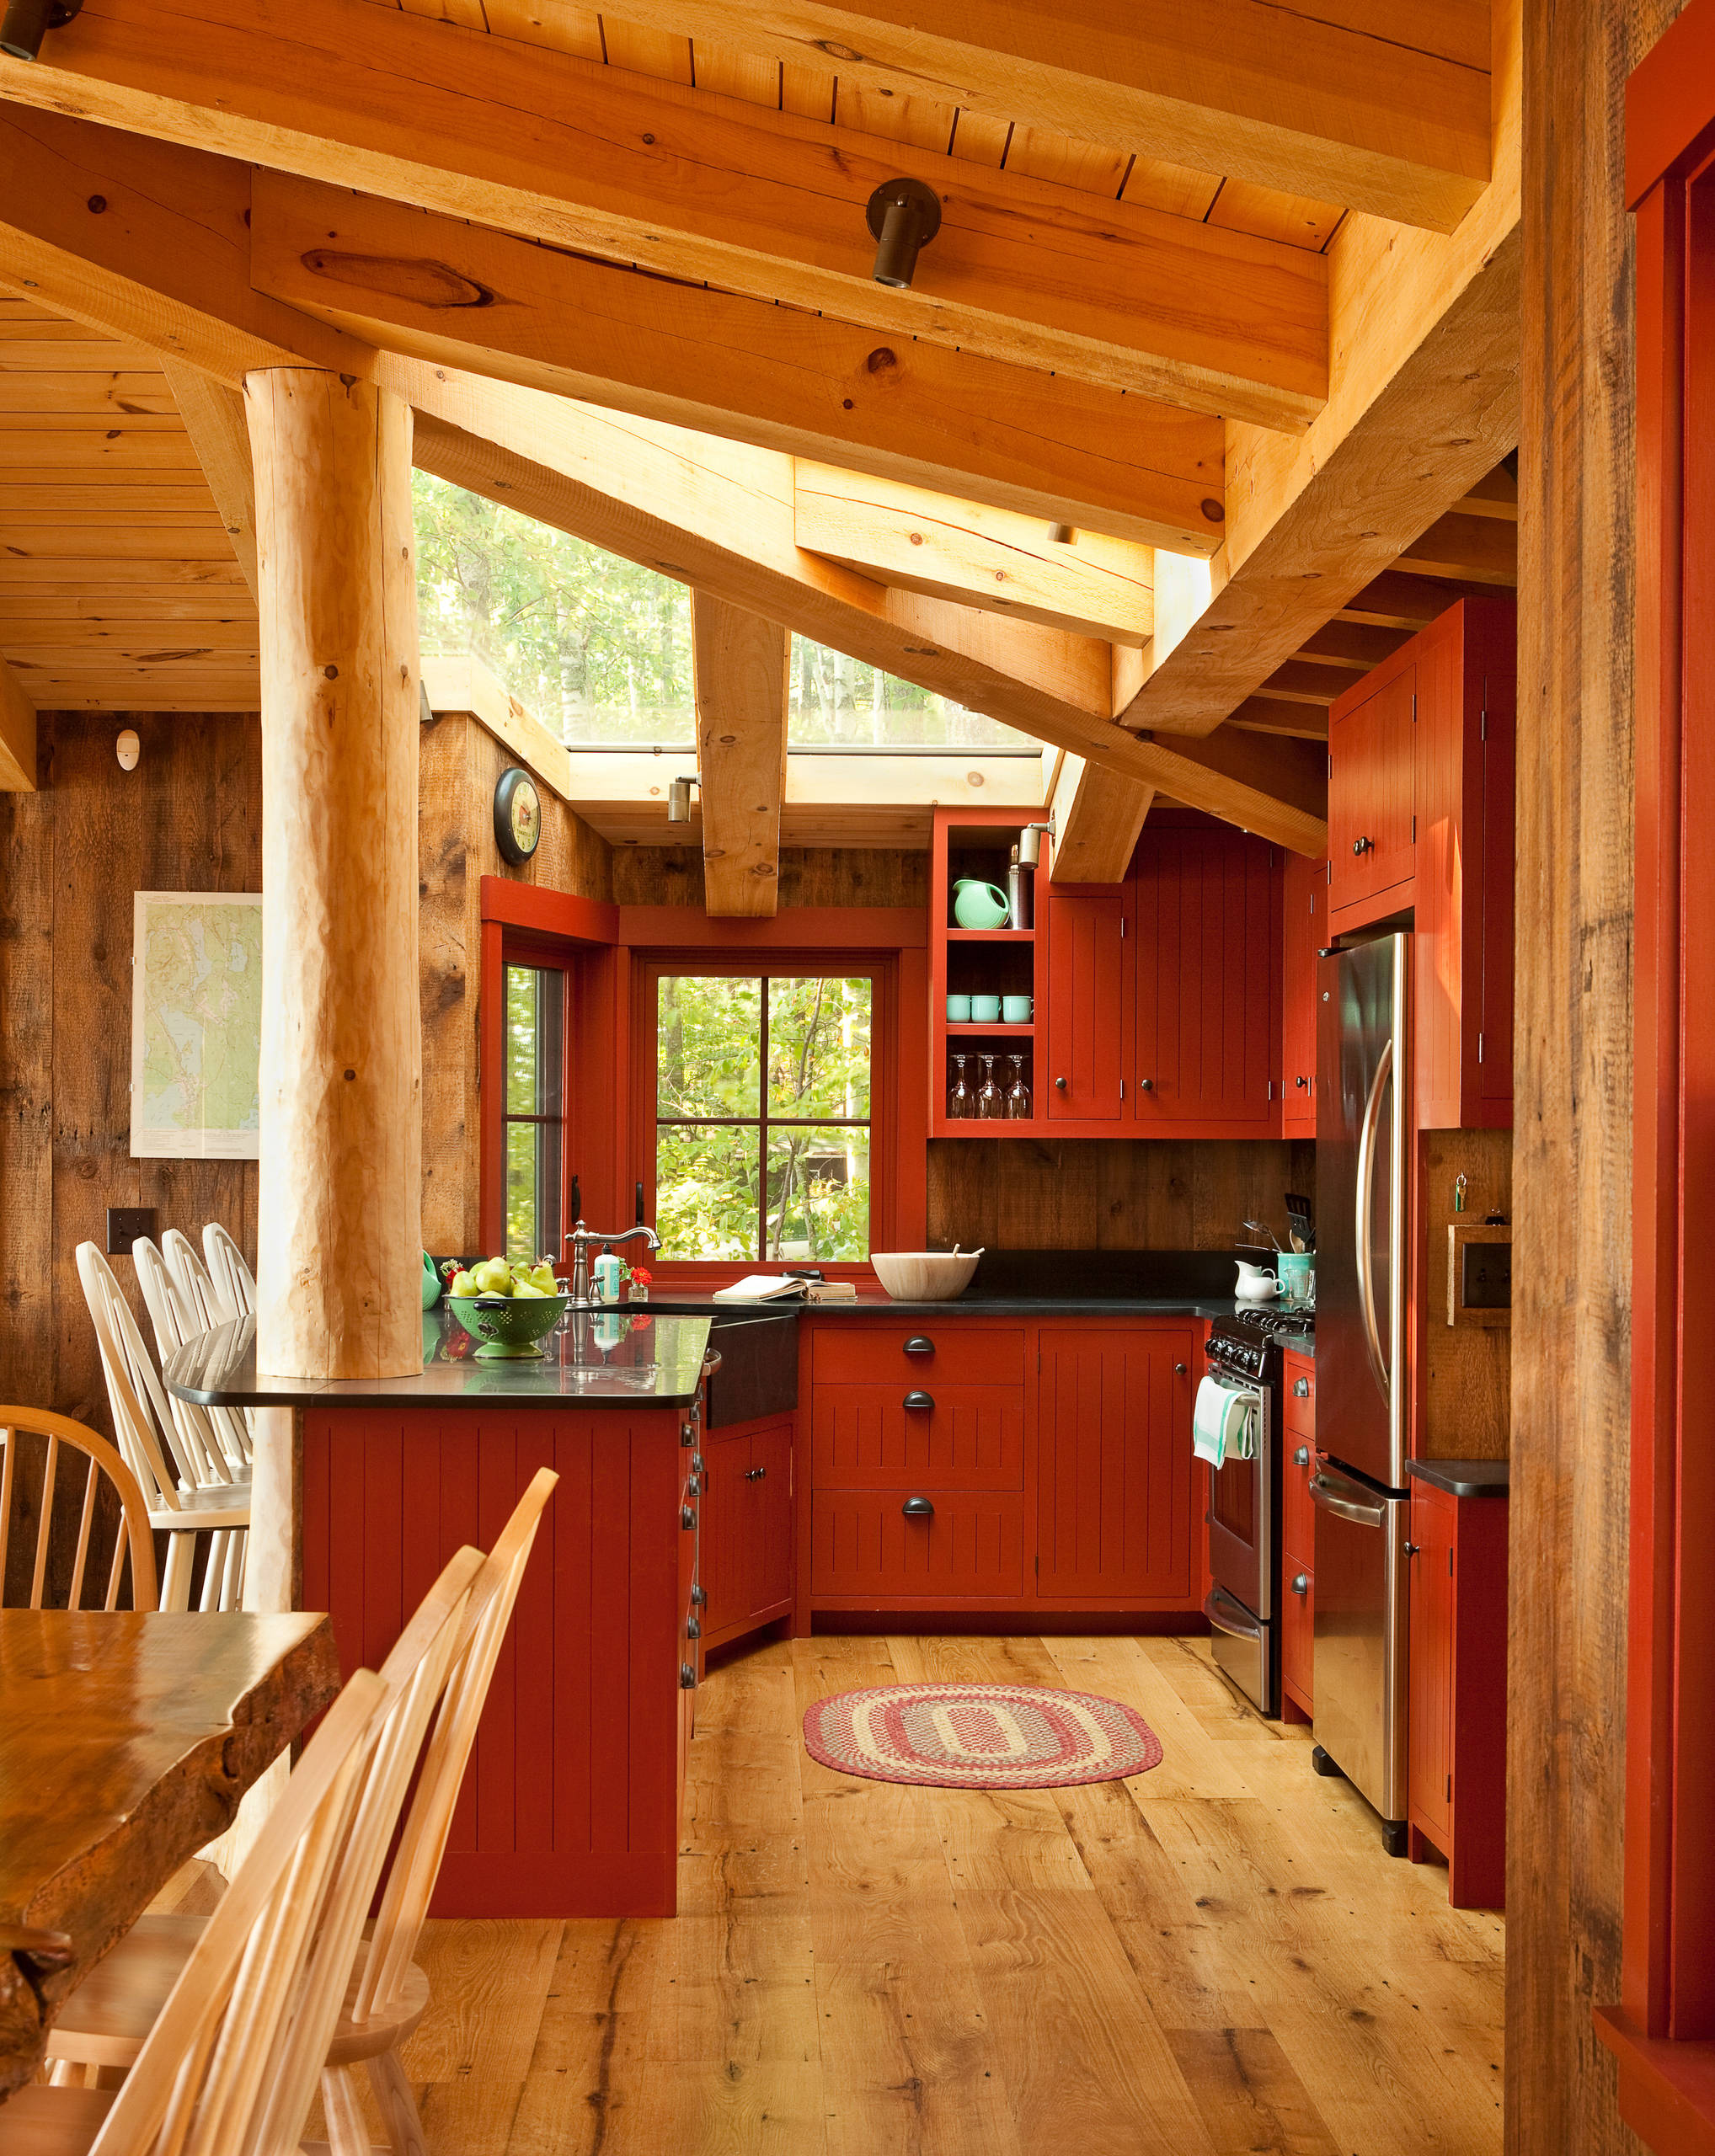 75 Beautiful Rustic Red Kitchen Pictures Ideas January 2021 Houzz